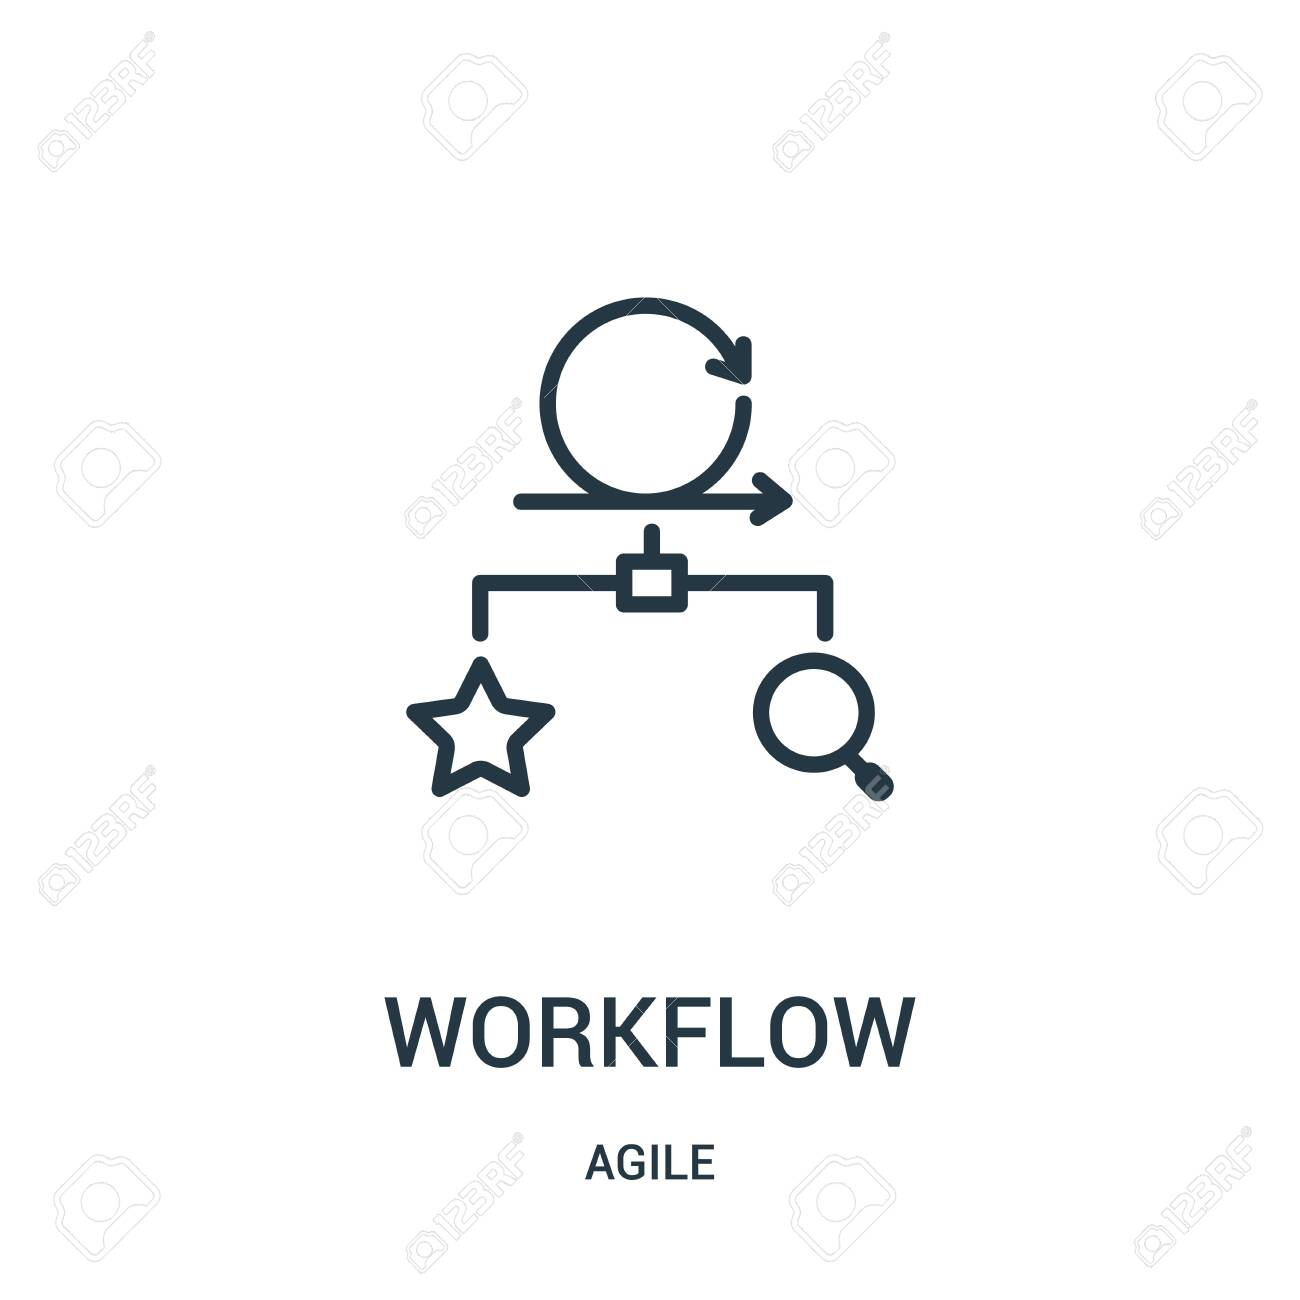 workflow icon vector from agile collection  Thin line workflow